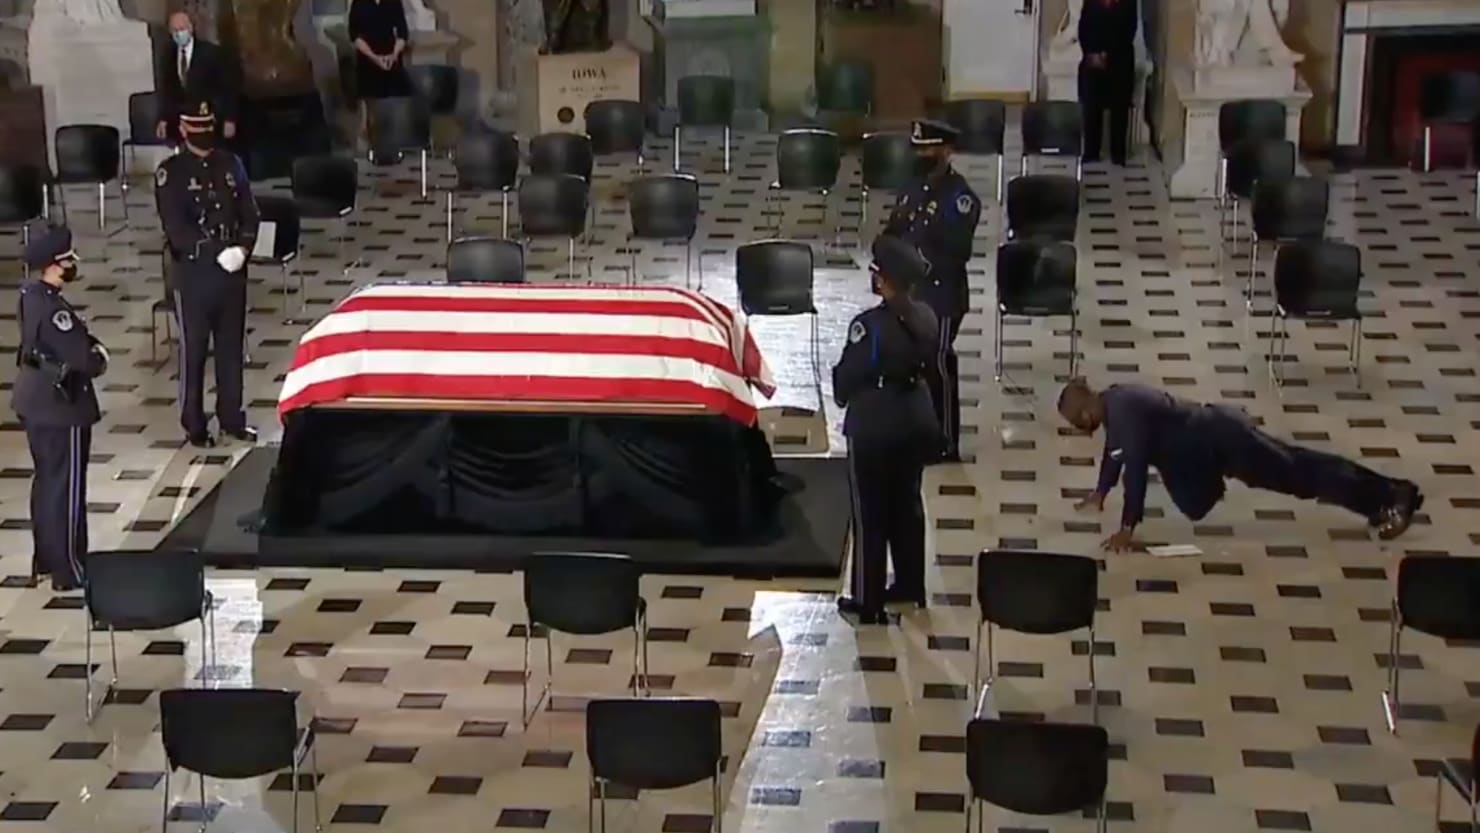 RBG's Trainer Does Pushups in Front of Her Casket at U.S. Capitol Memorial Service